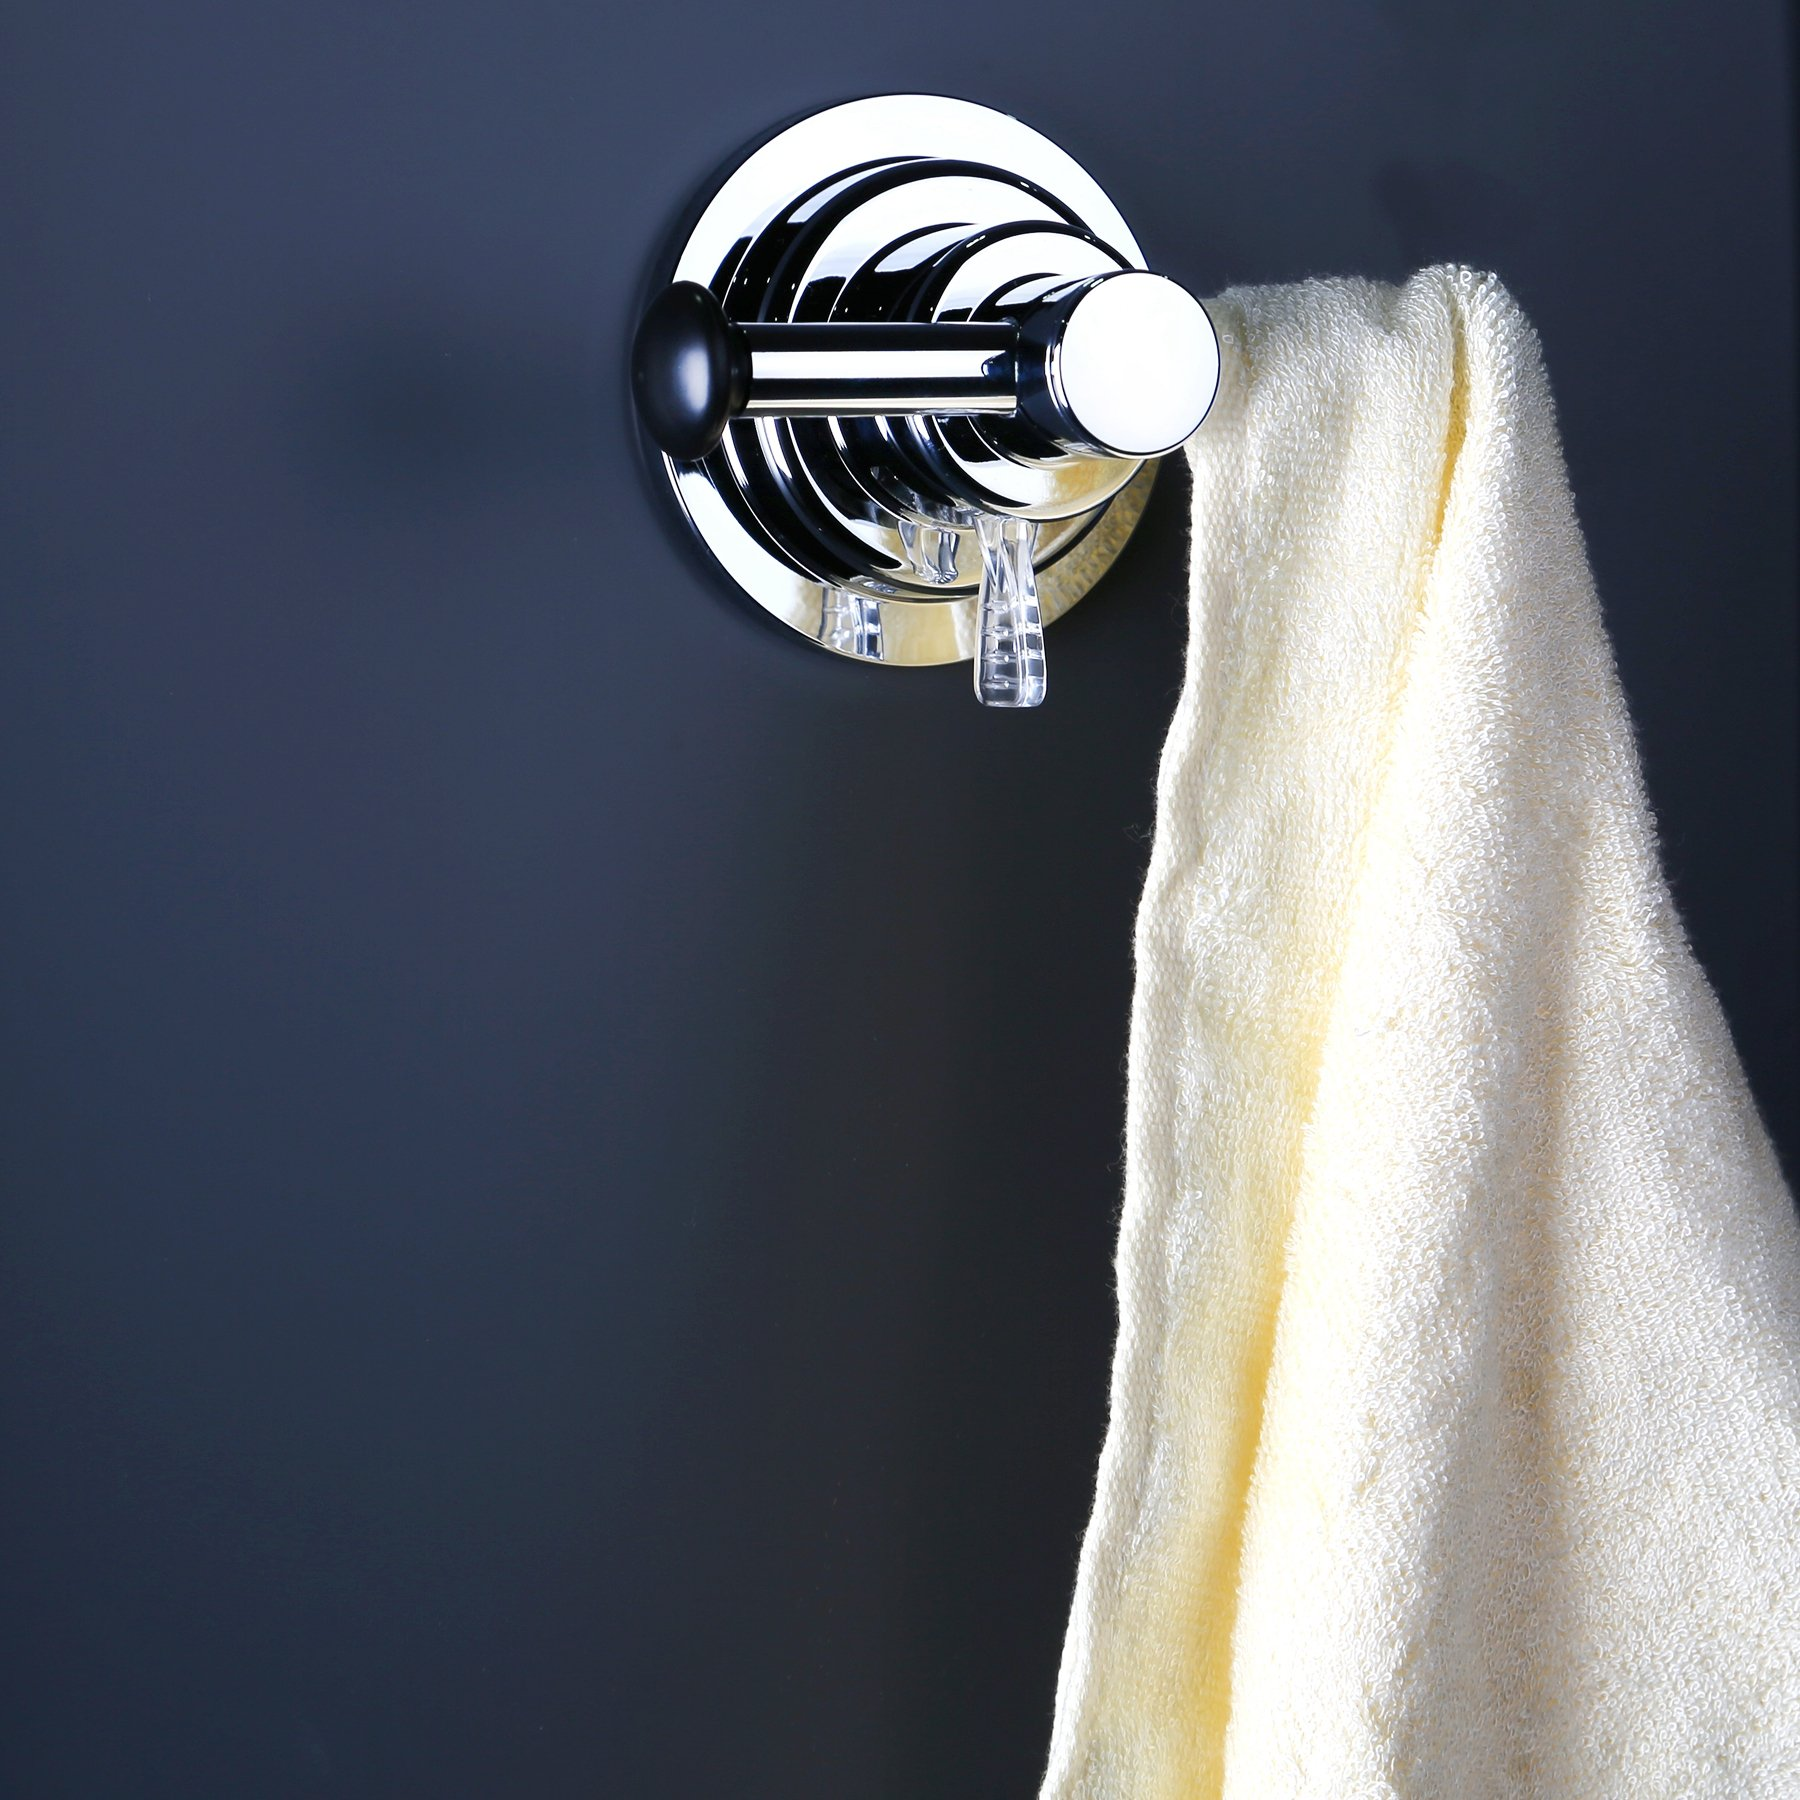 BOPai Large Suction Cup Sided Hooks - Strong Suction for Holder Towel Bathrobe Washrag Loofah Bag.Premium Chrome by BOPai (Image #2)